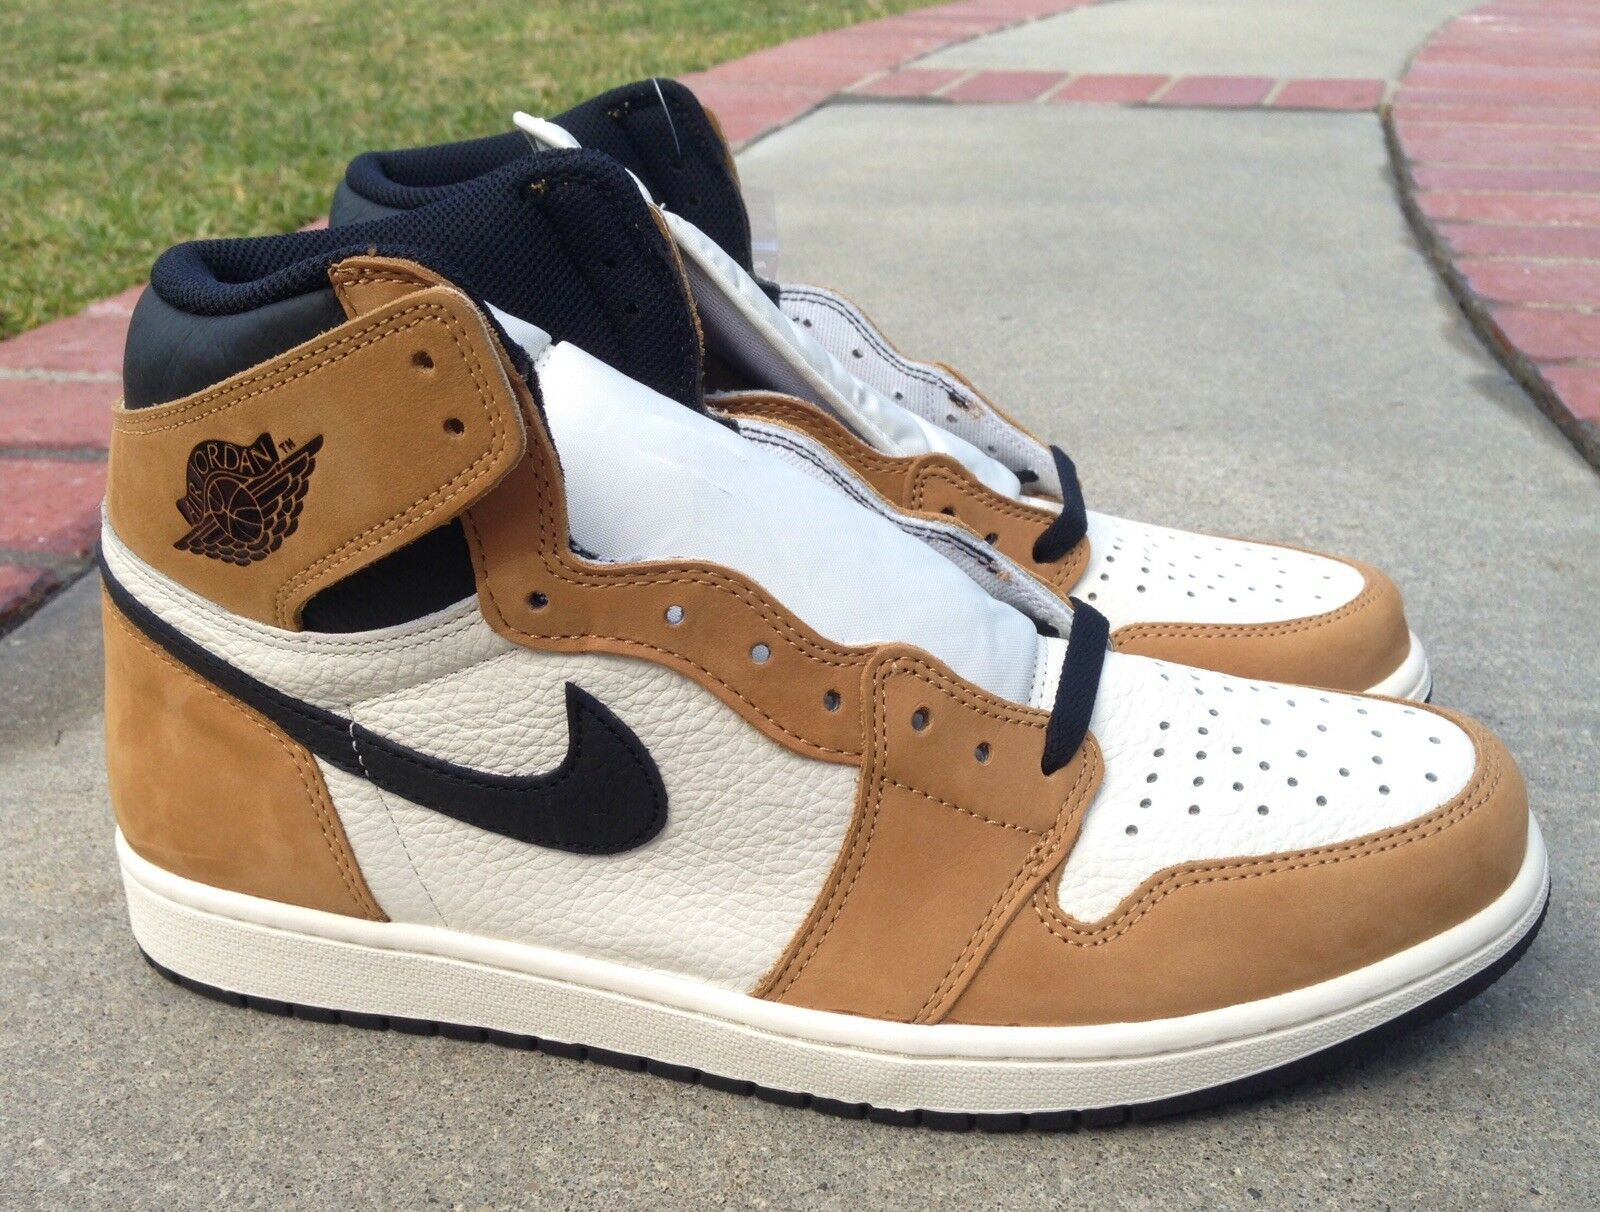 Air Jordan Retro 1 High High High OG Dimensione 11.5 Uomo Rookie Of The Year rossoY 555088-700 45d3ee